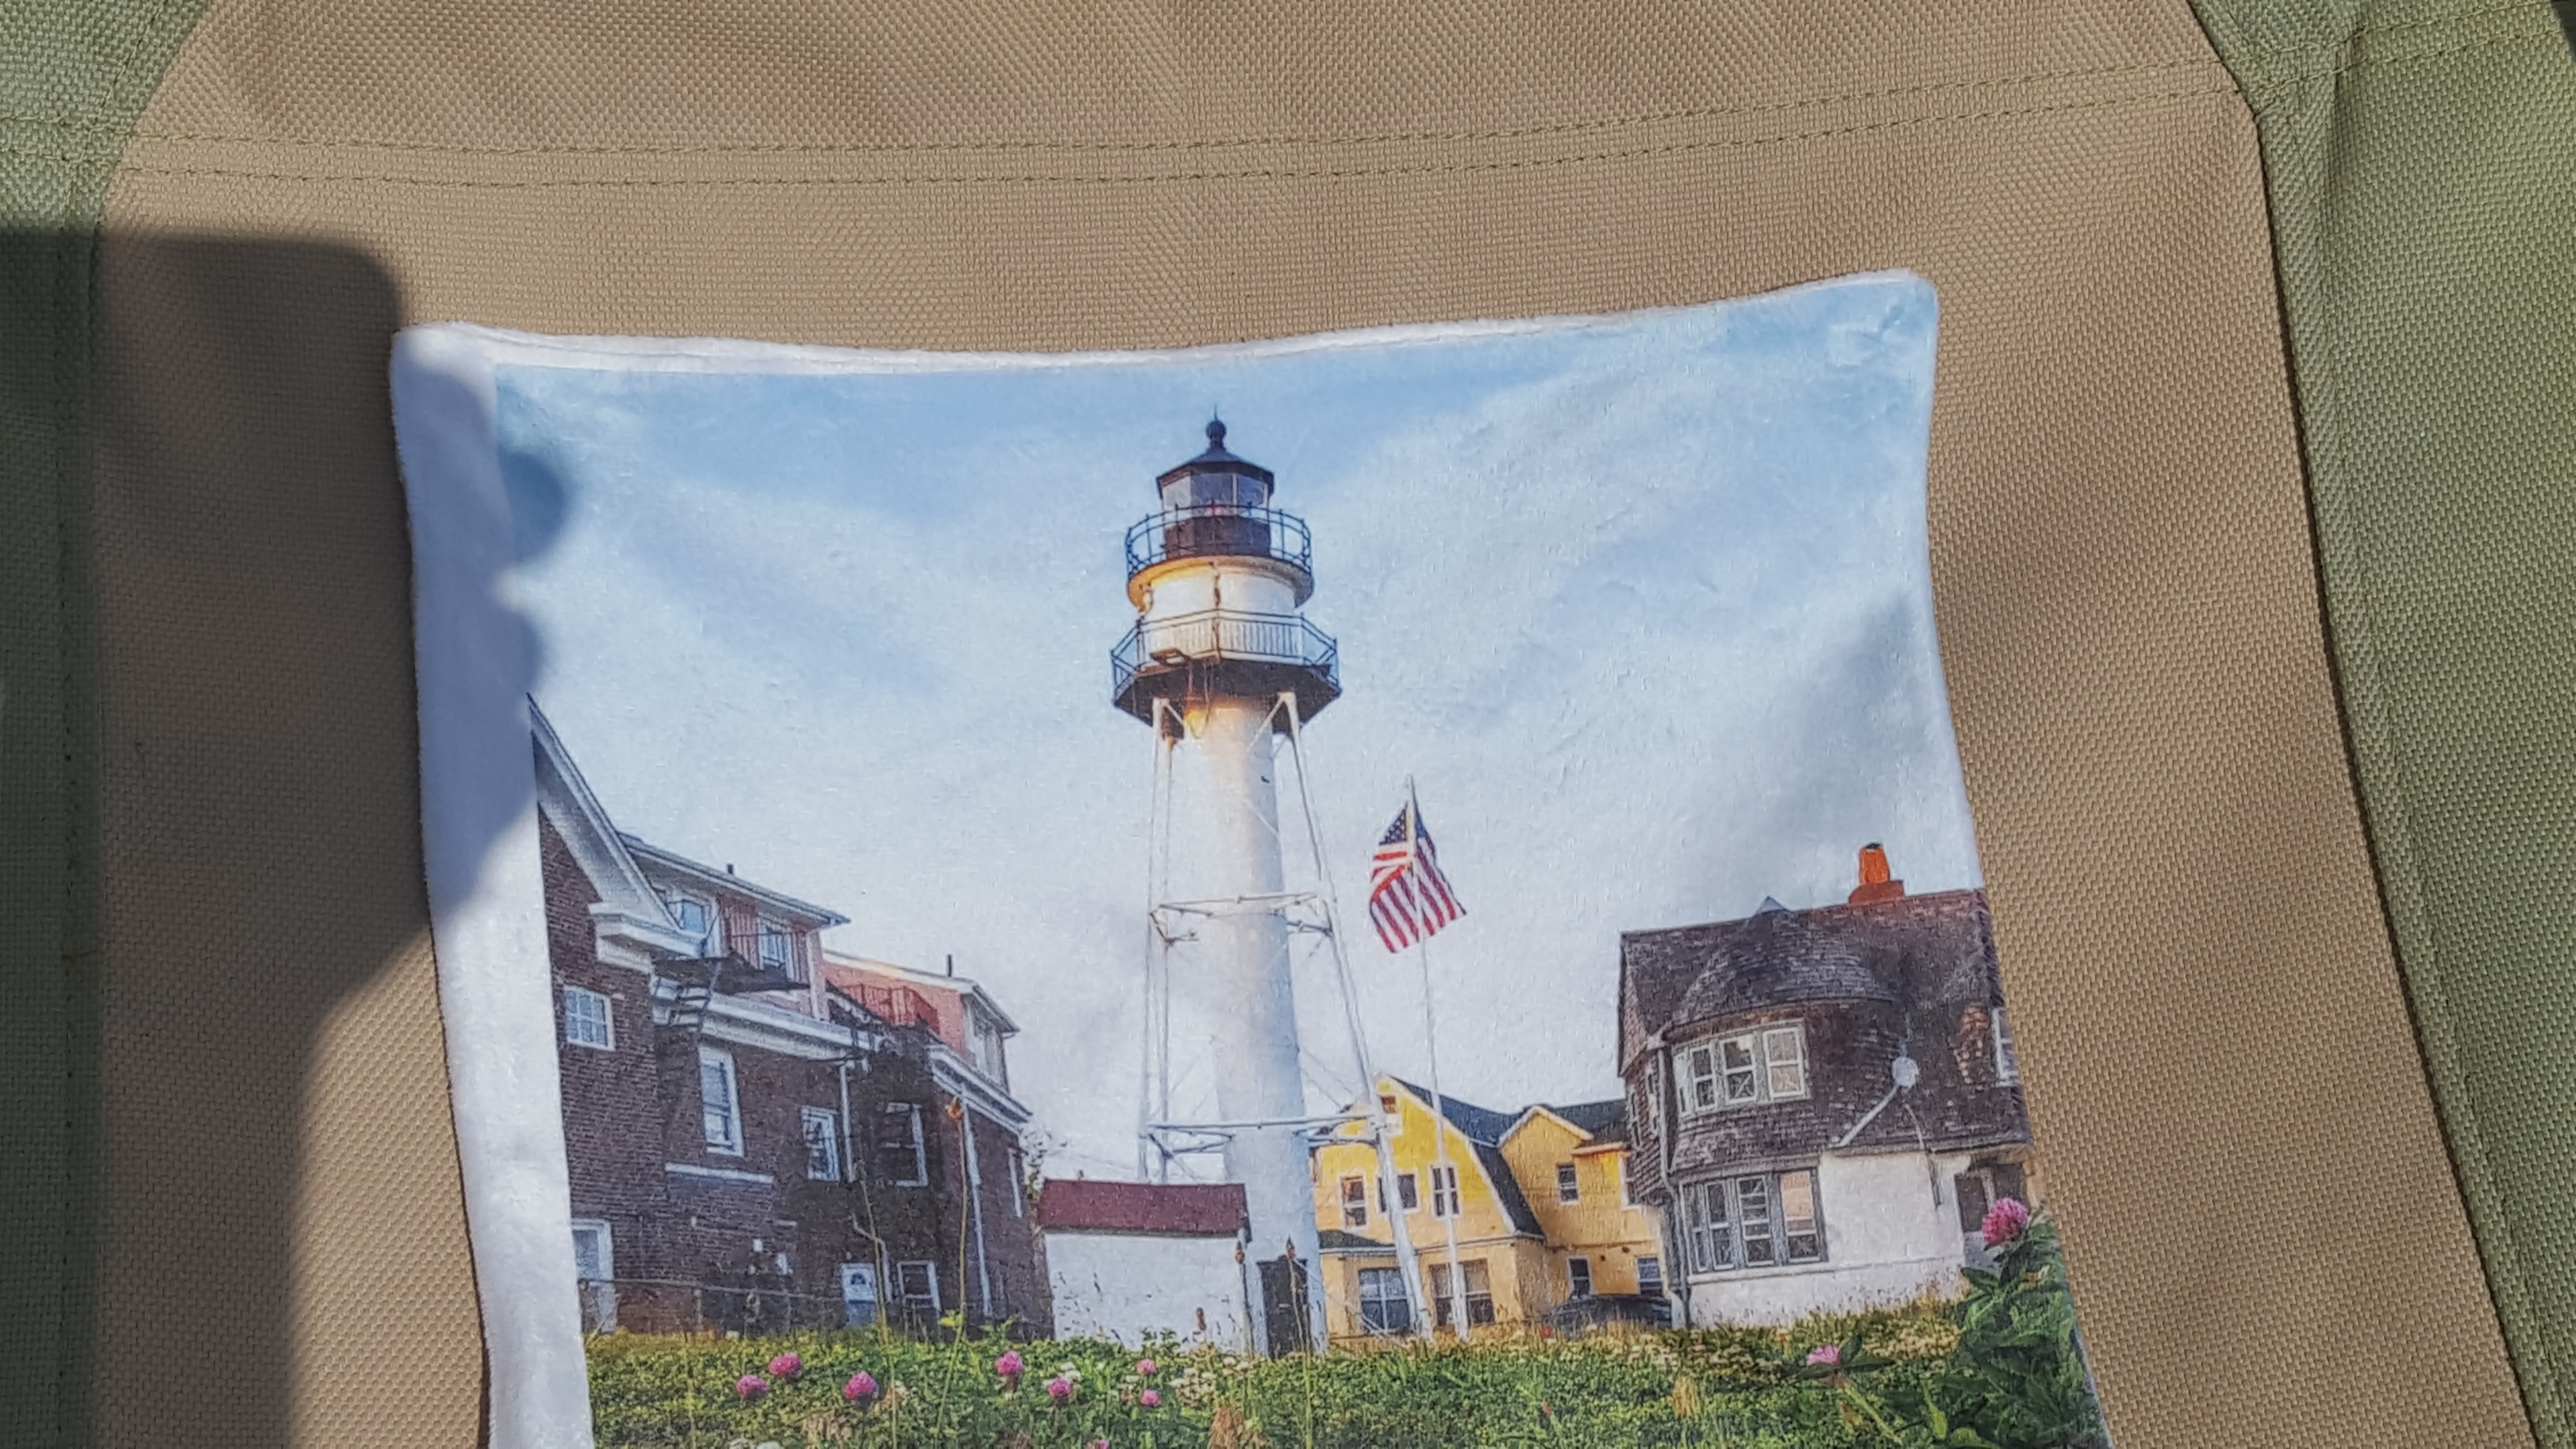 14 inch Throw Pillow Covers For Sublimation November